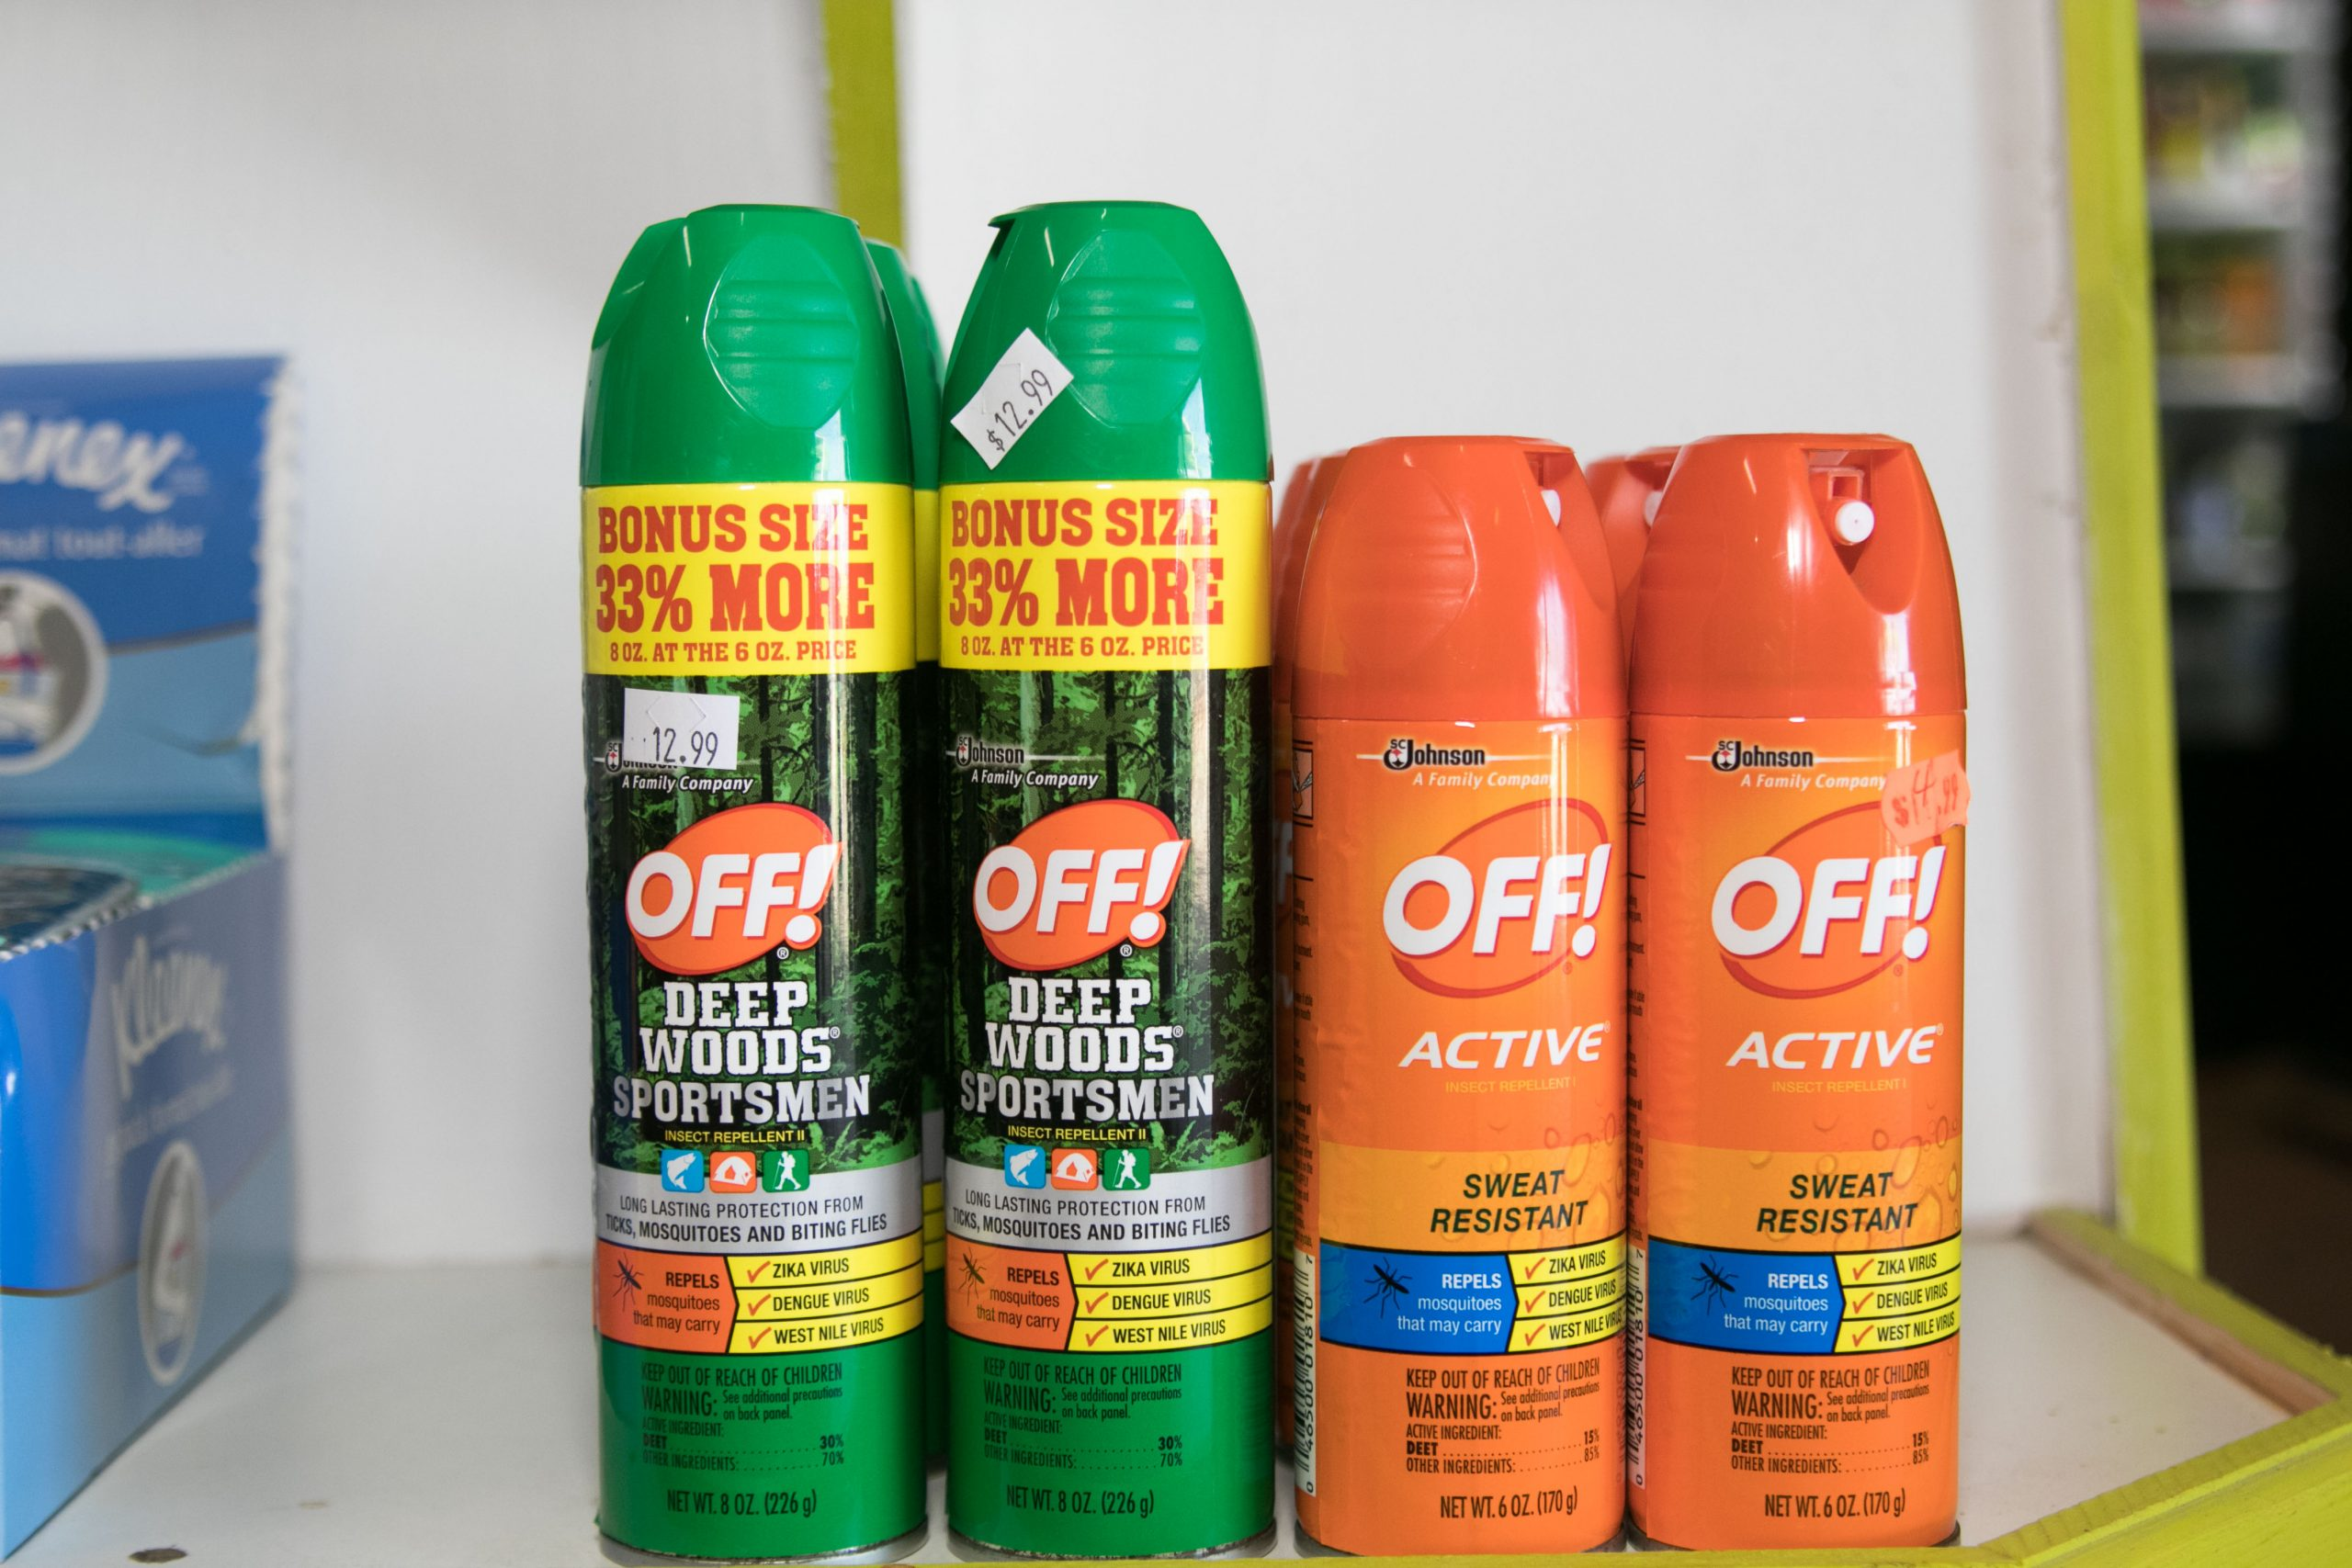 spray repellent at trellis bay market